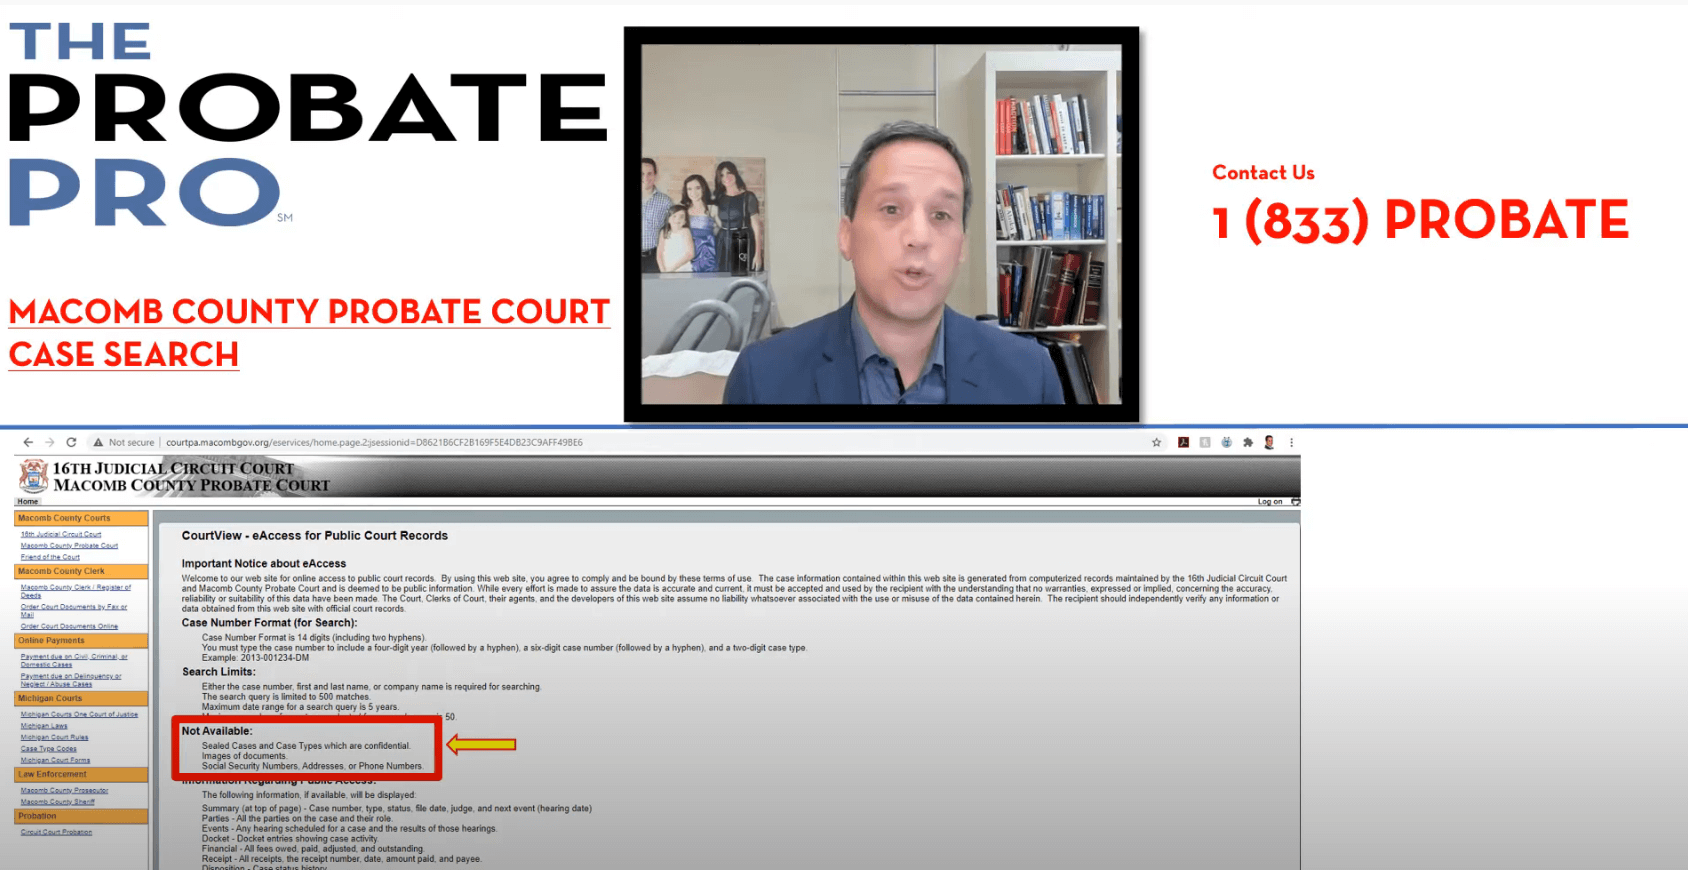 Macomb County Probate Court Case Search